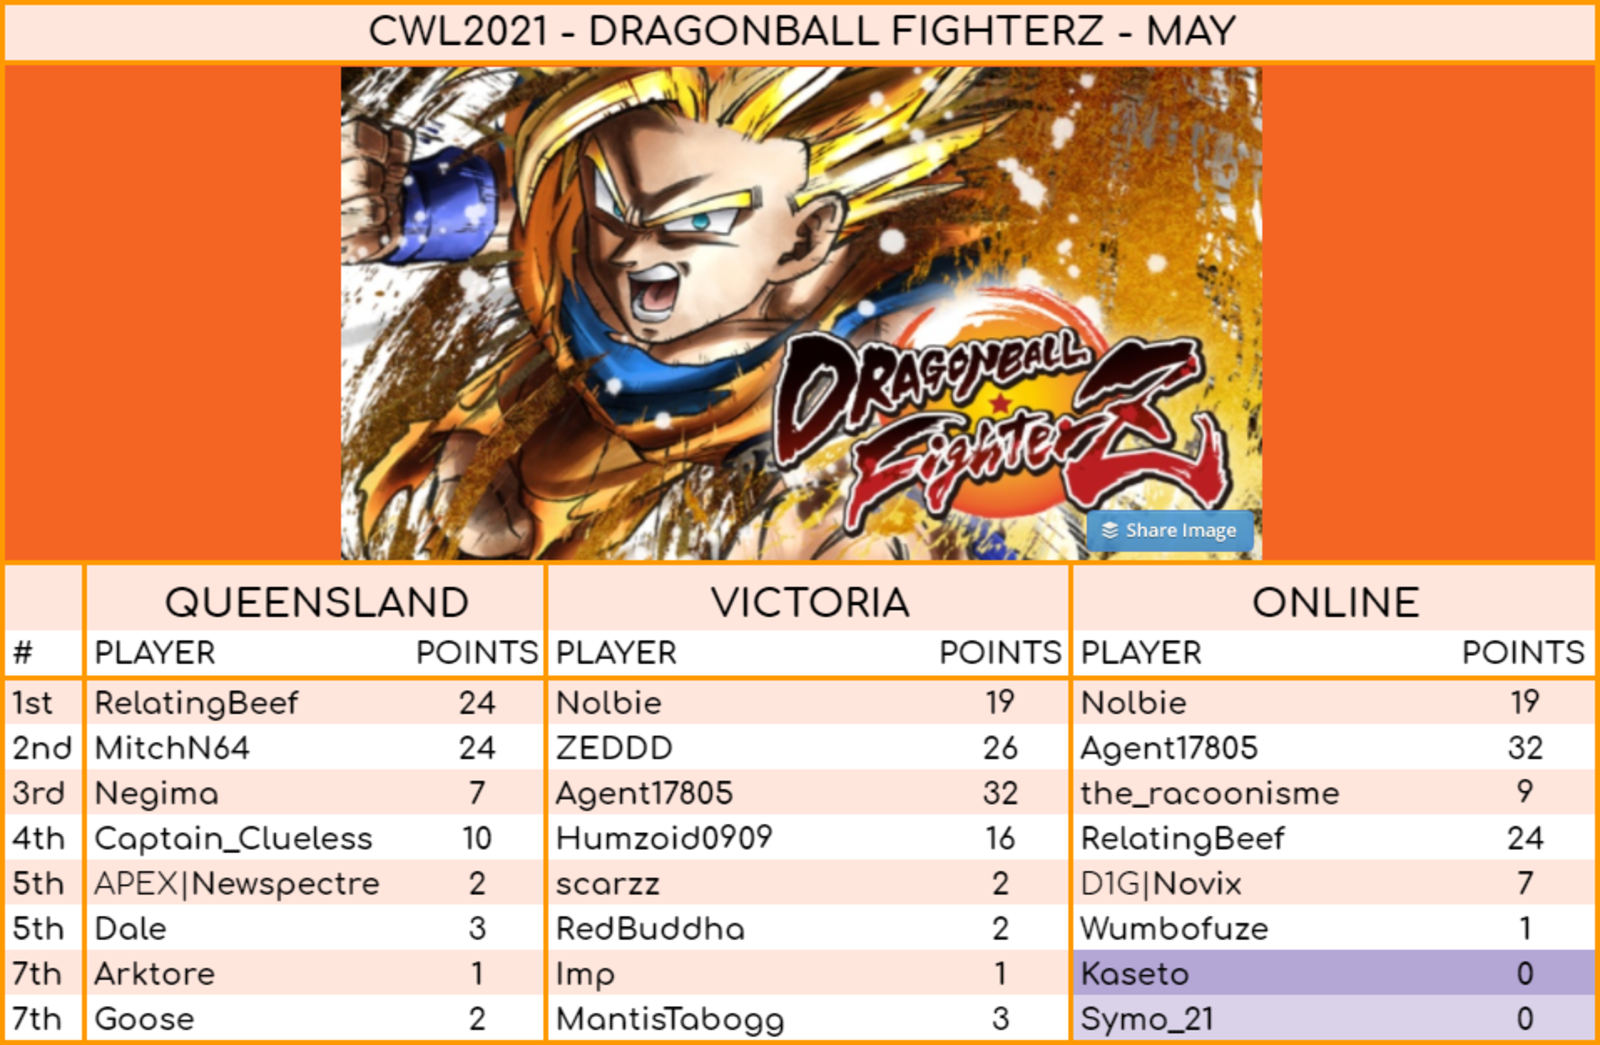 DBFZ results for May